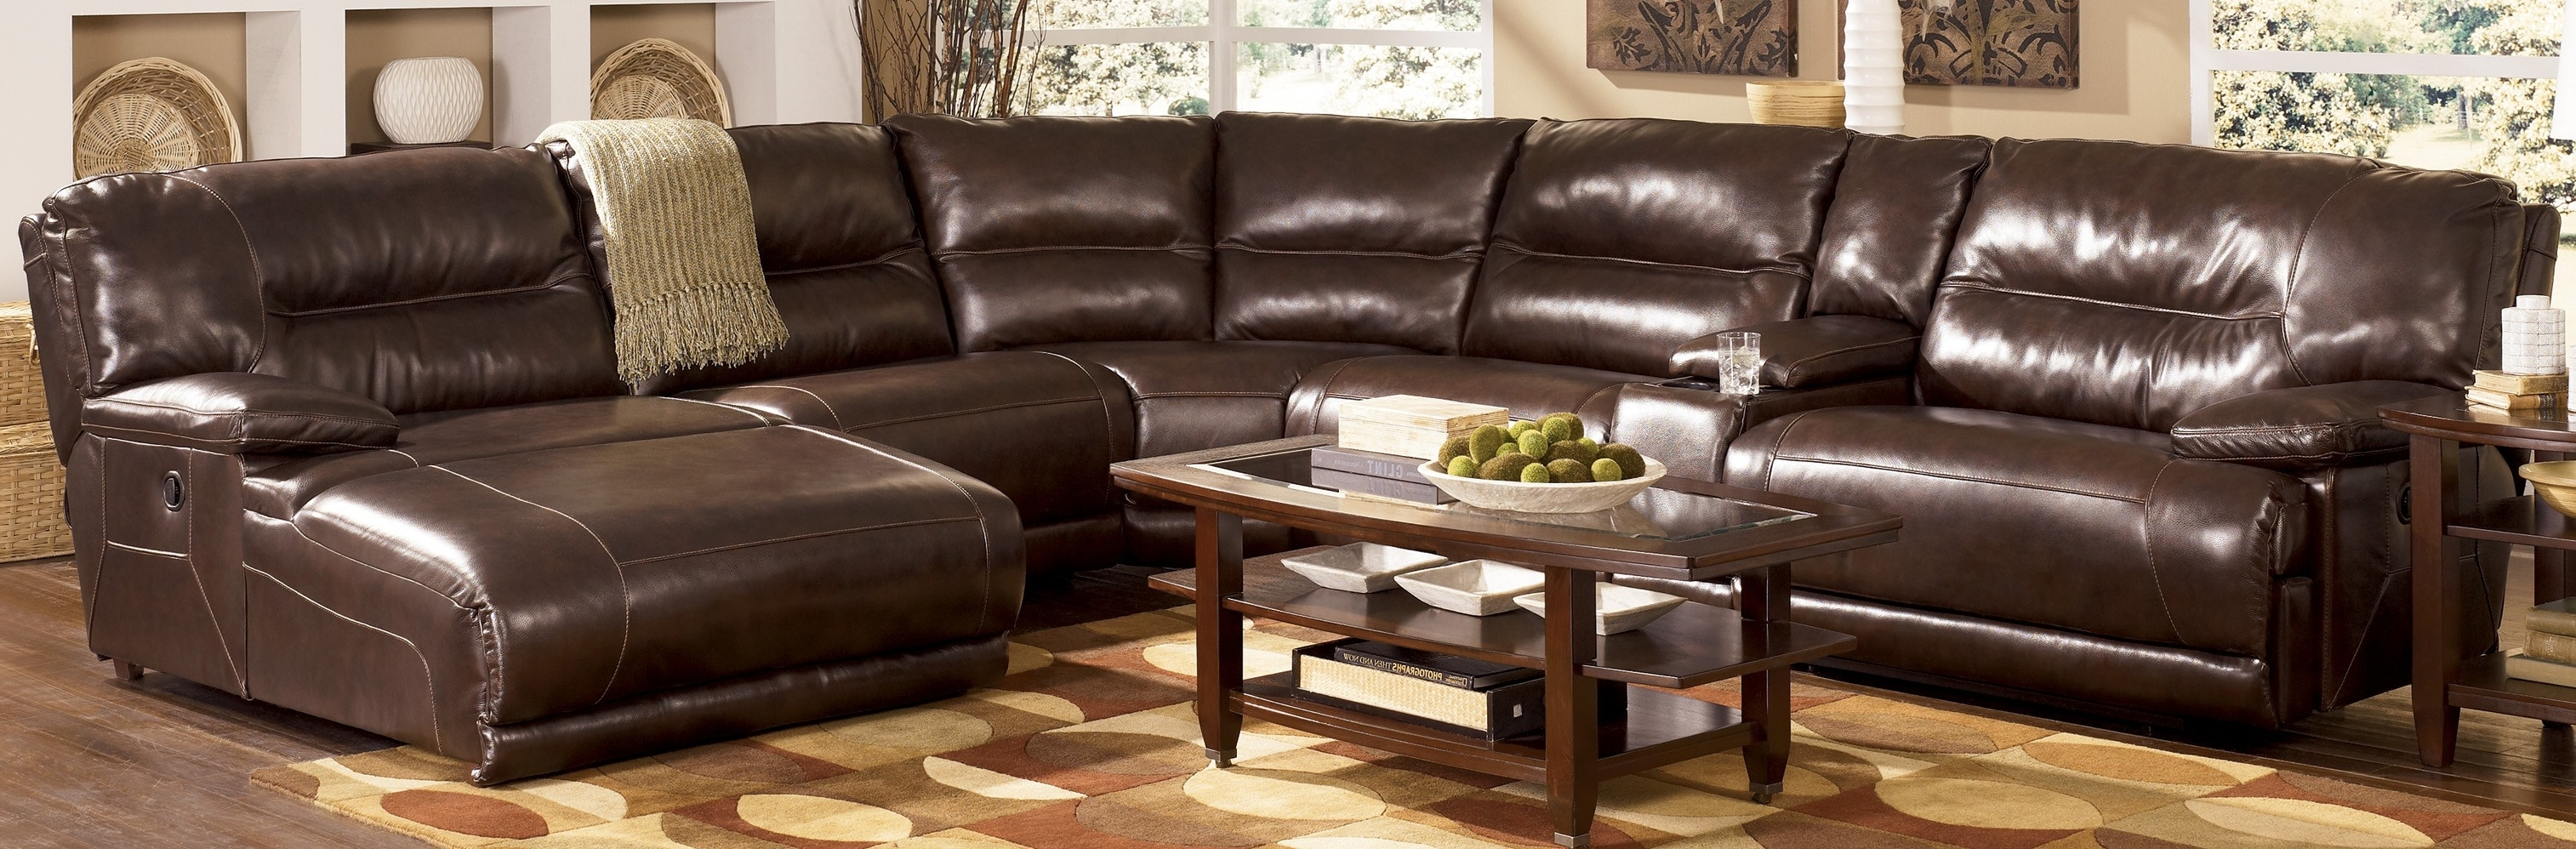 Sofa : Sectional With Recliner And Chaise Lounge Couch Covers For Within Best And Newest Leather Motion Sectional Sofas (View 17 of 20)